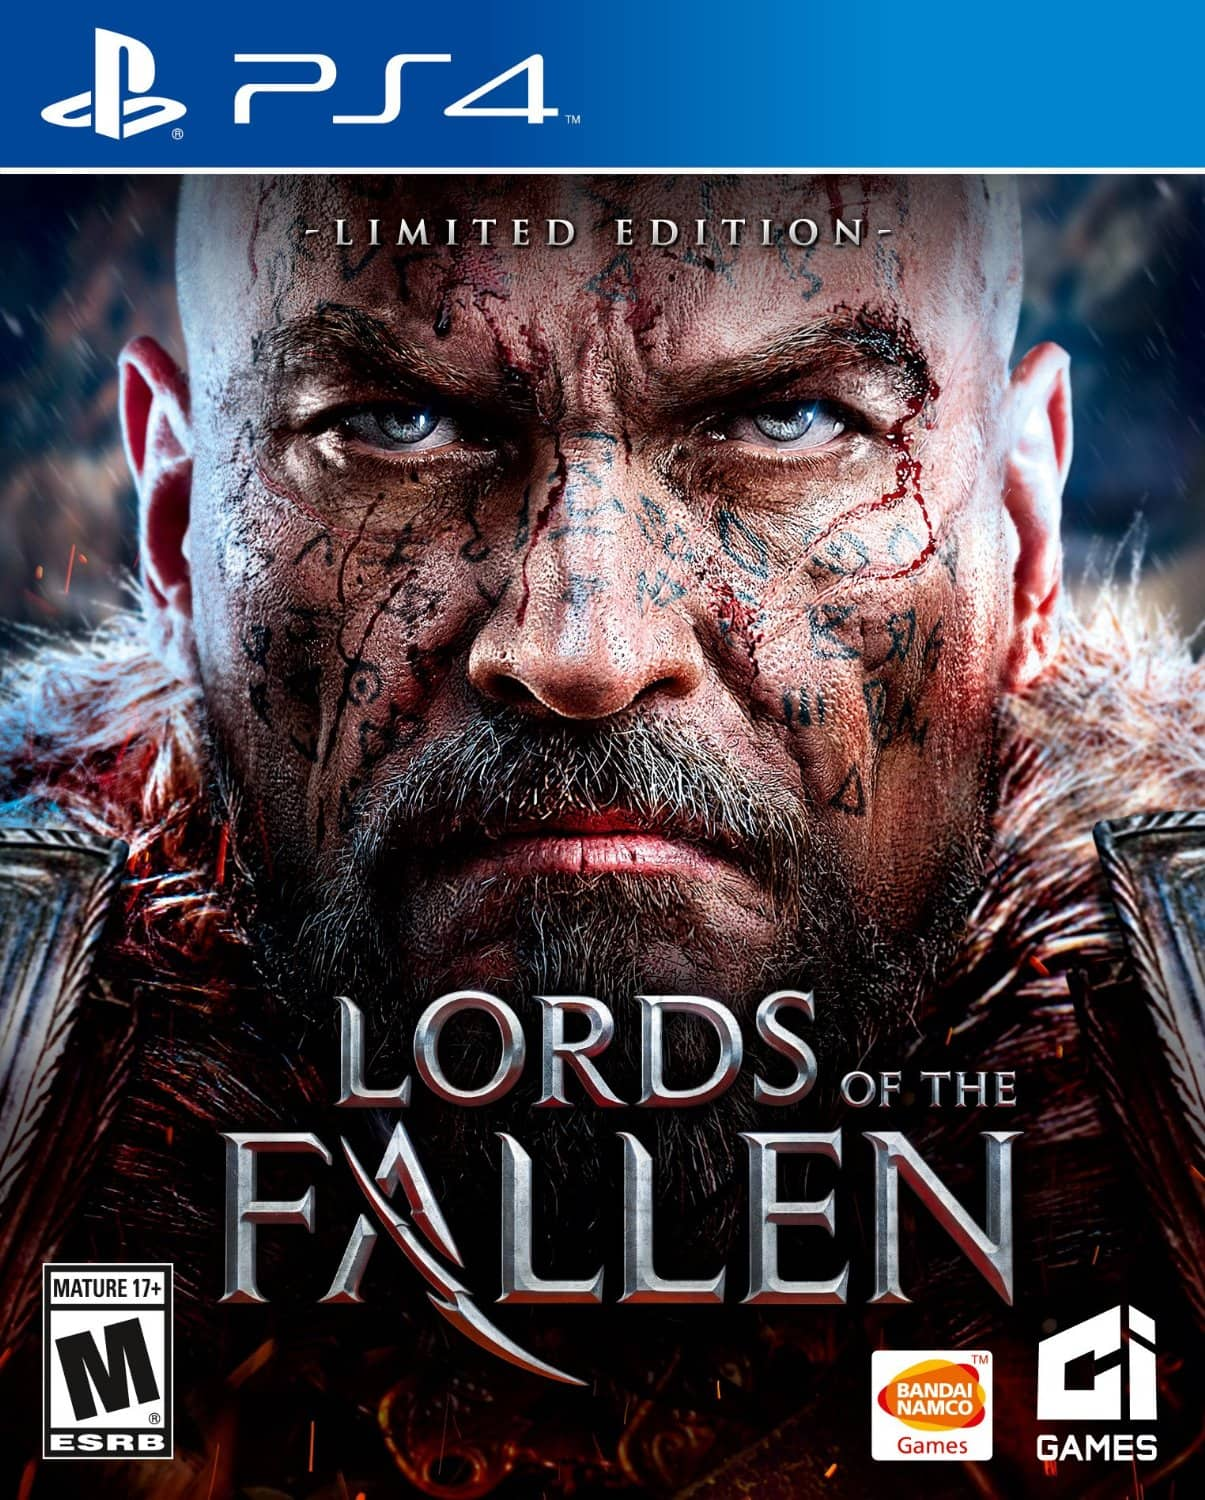 Lords of the Fallen Limited Edition PS4 $39.99 (Standard Edition PS4 & Xbox One $39.99)